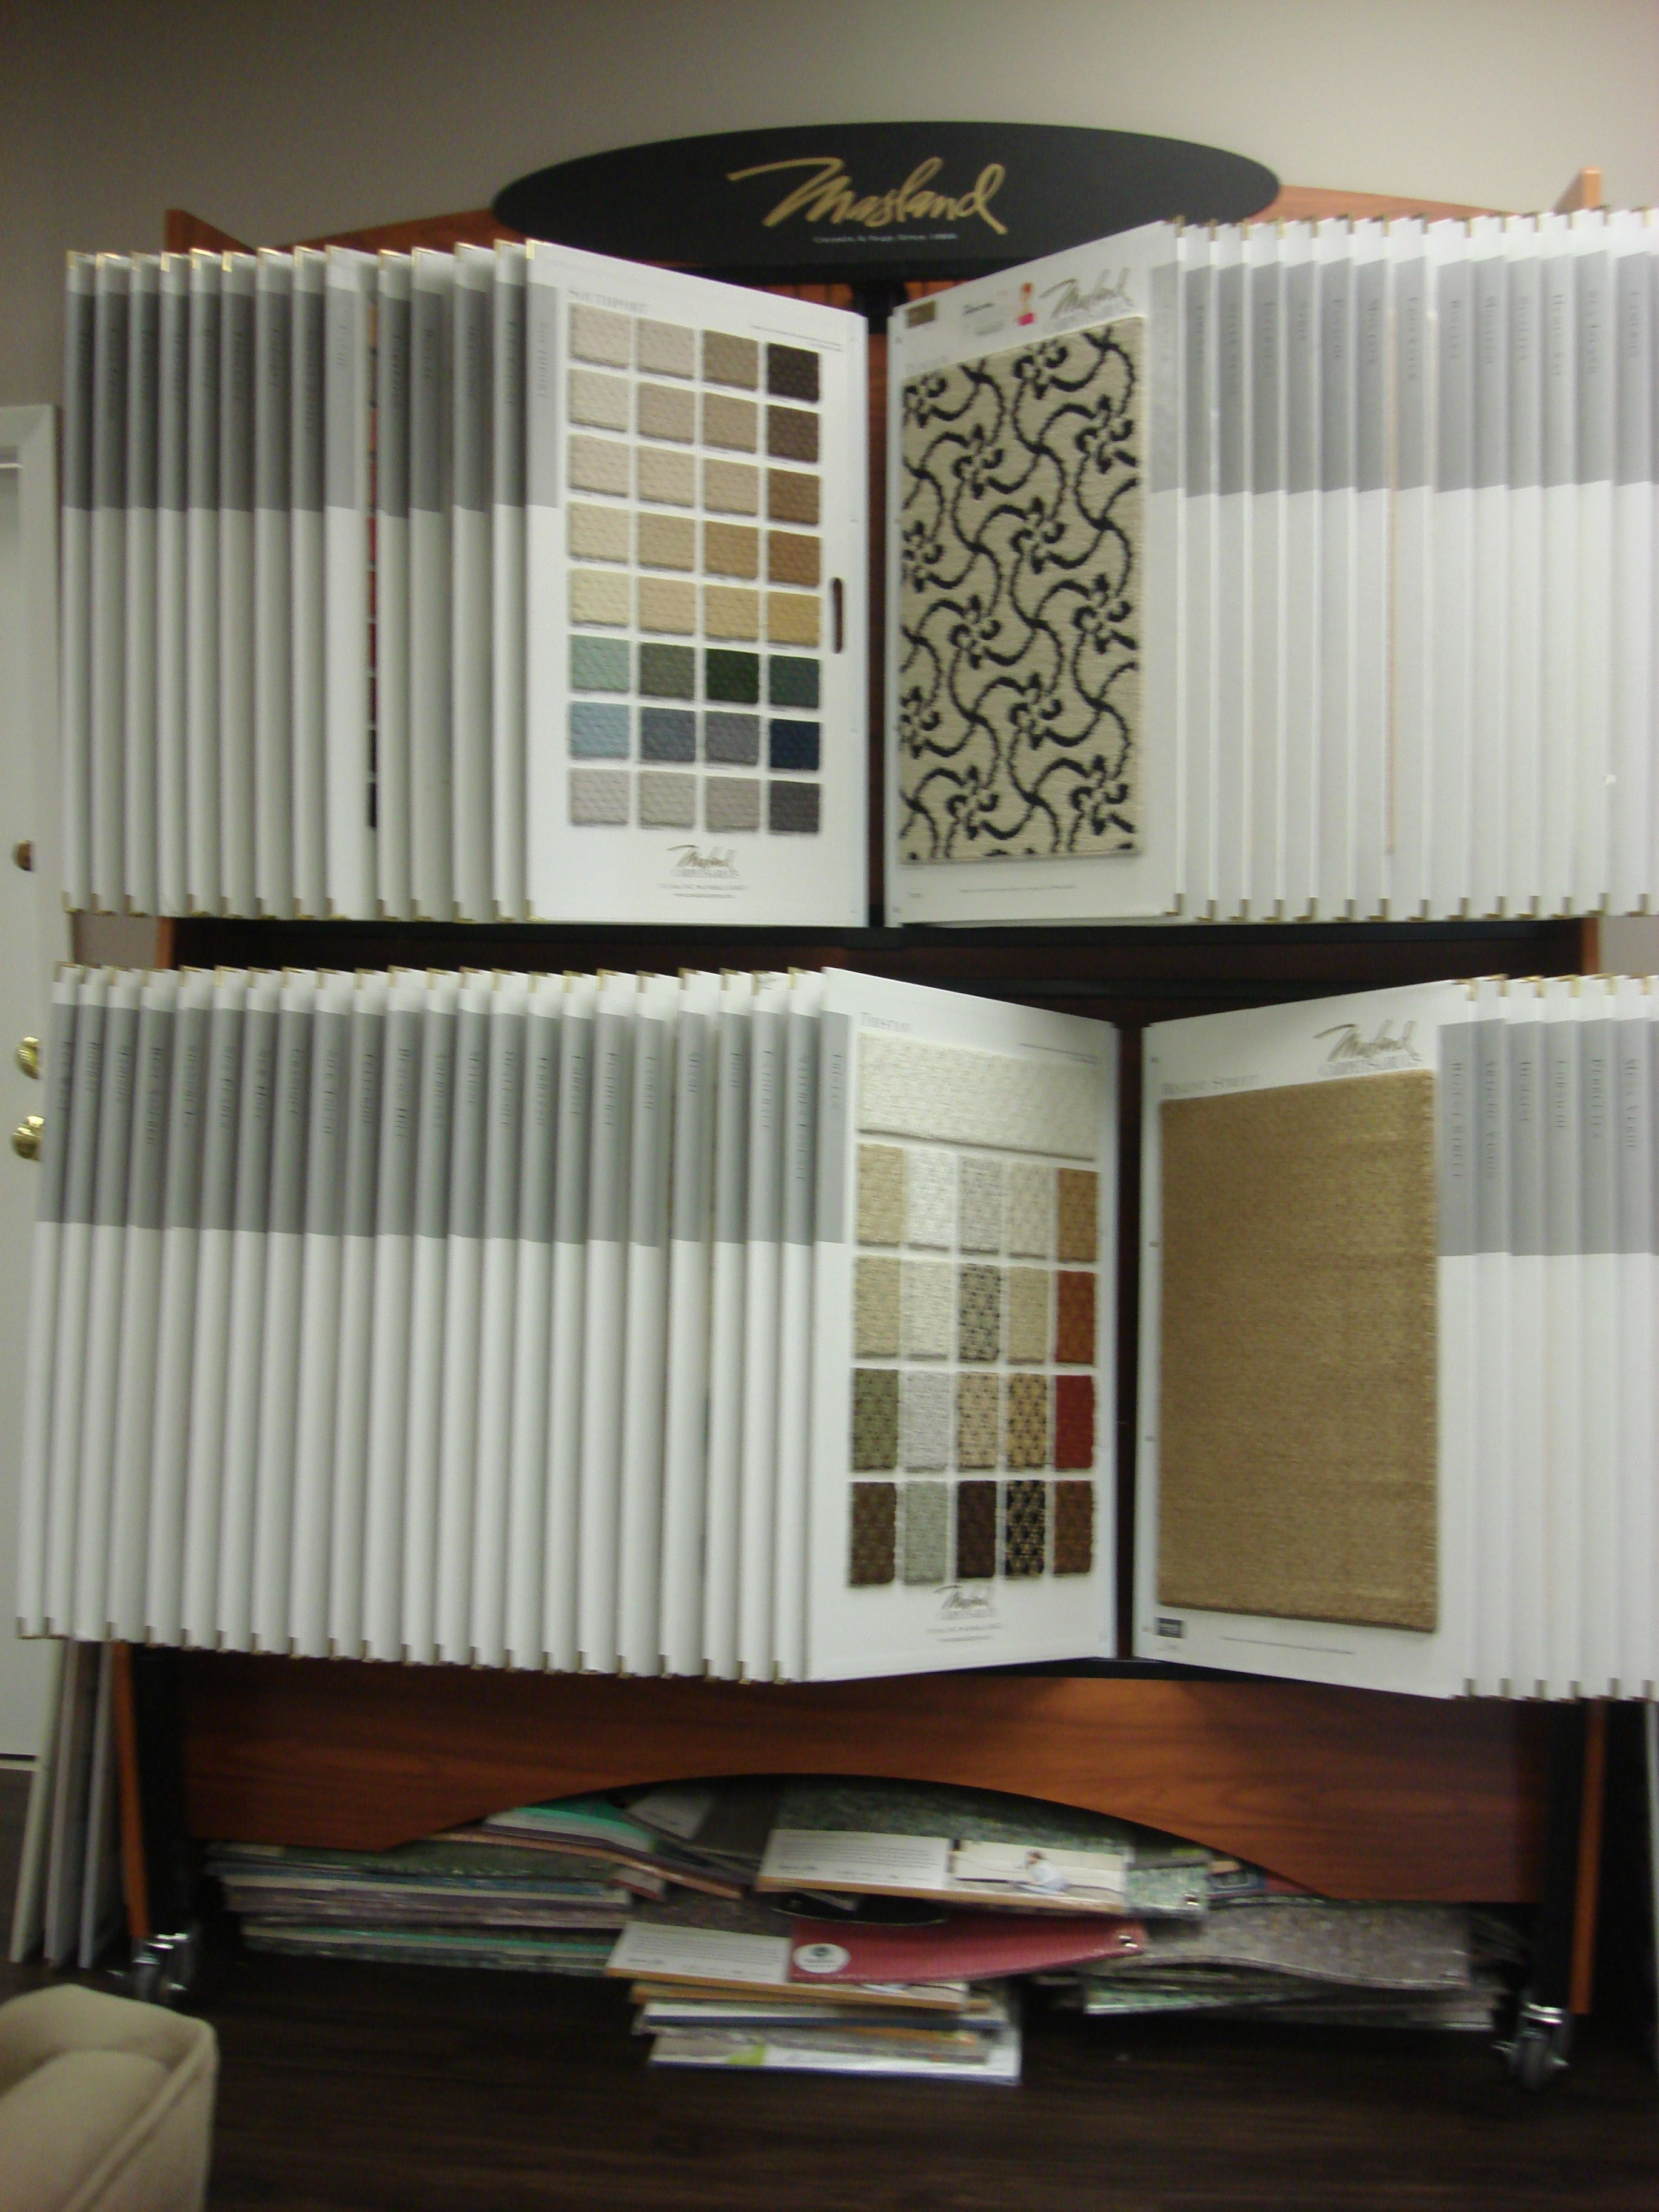 check out our masland carpet and rugs display these are high check out our masland carpet and rugs display these are high quality nylon carpets